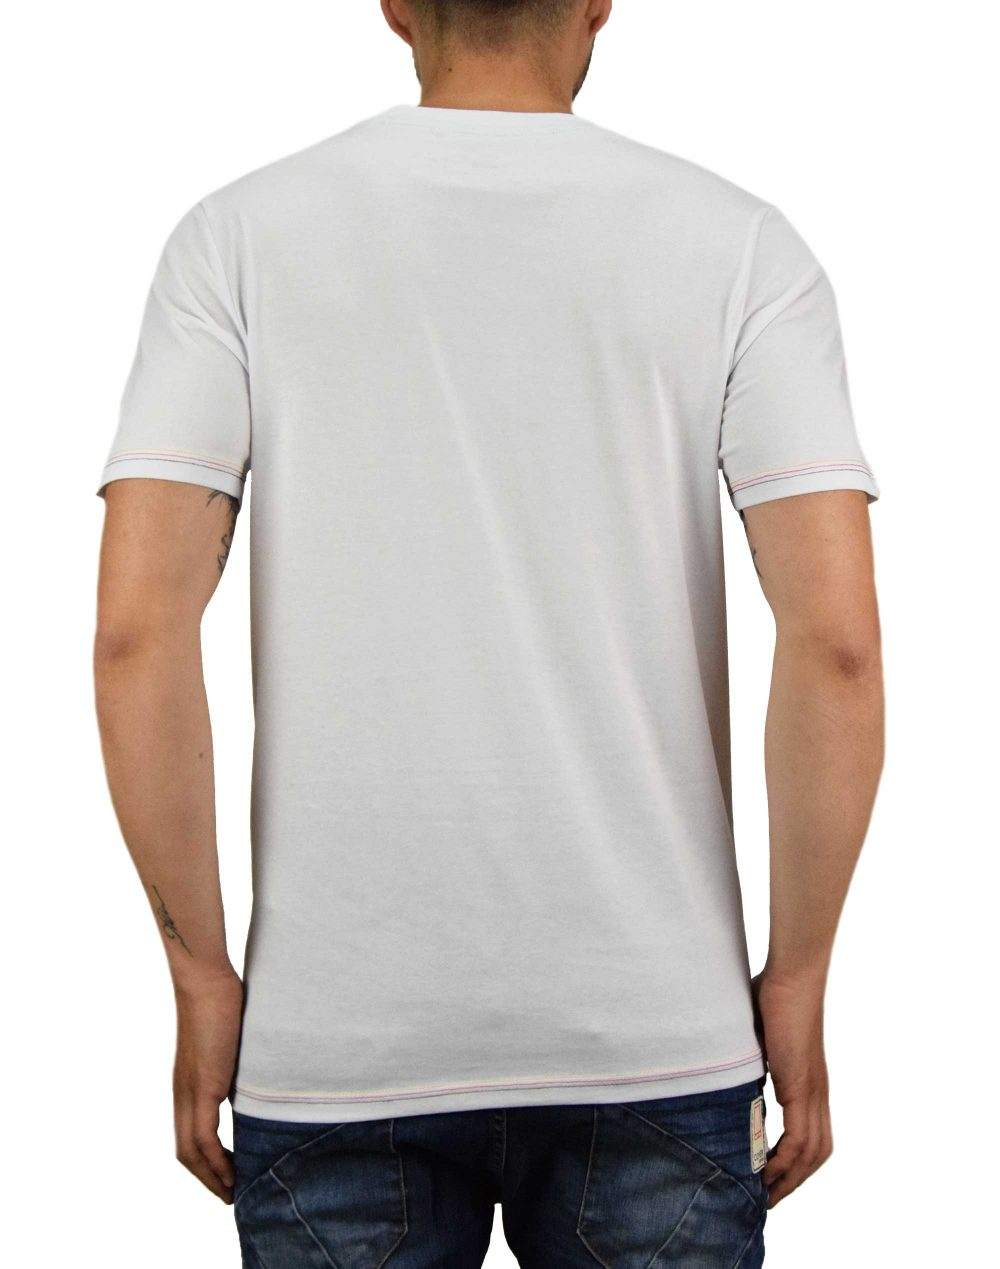 Jack & Jones Jacob Tee (12171360) White